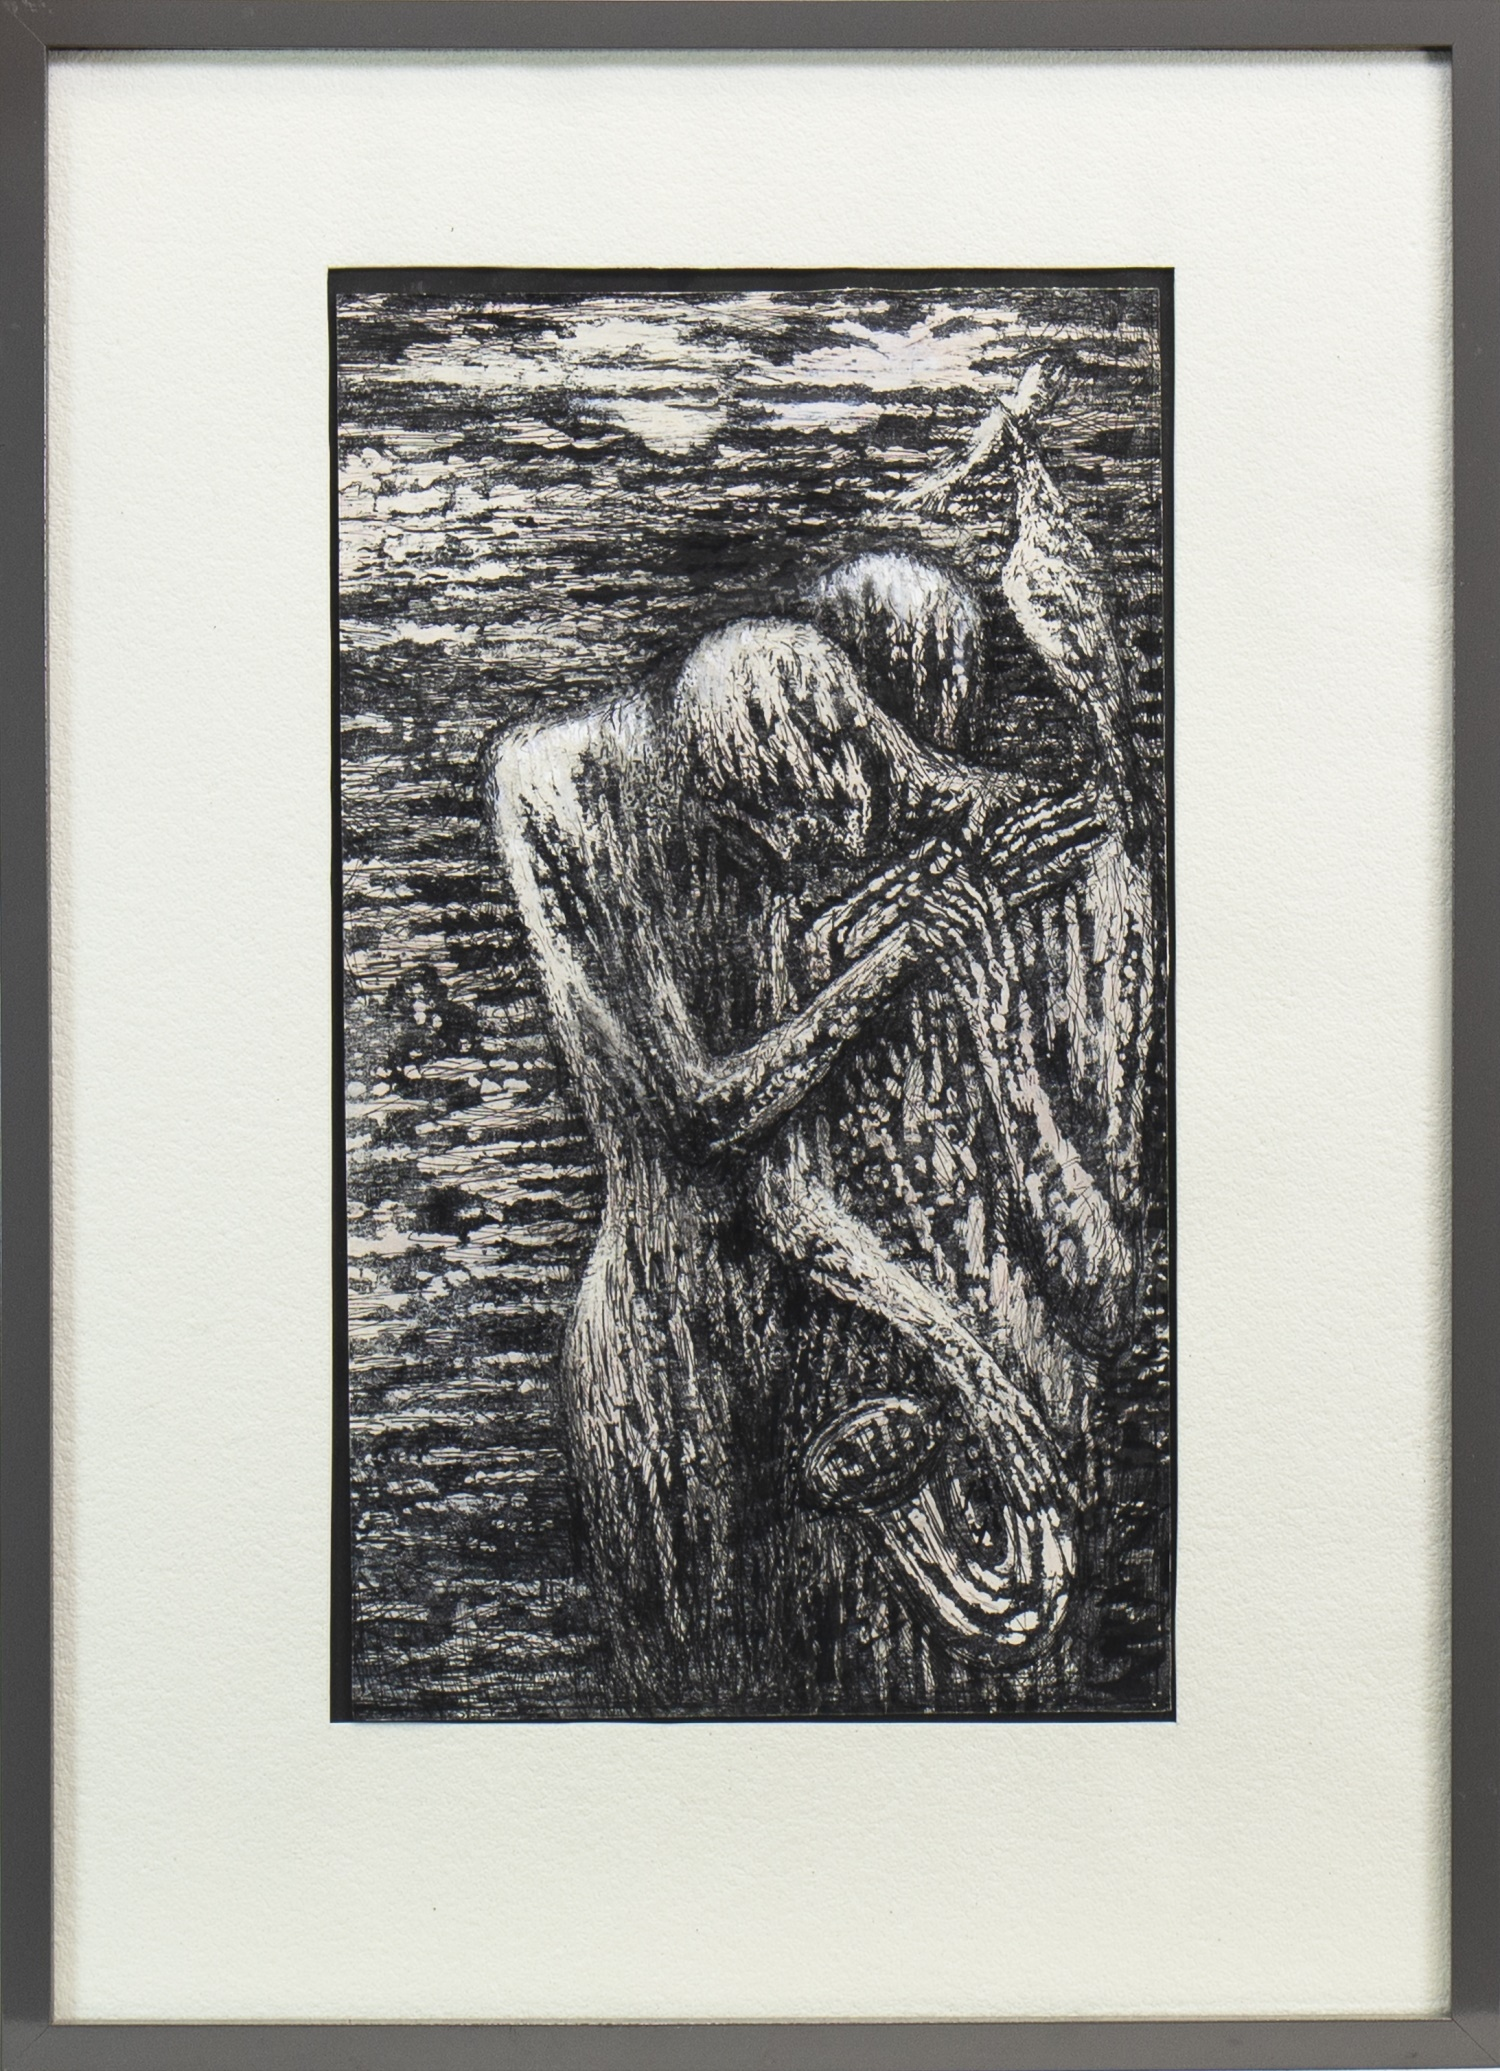 Lot 520 - BLUES BUDDIES II, AN INK AND WASH BY JOSEPH URIE